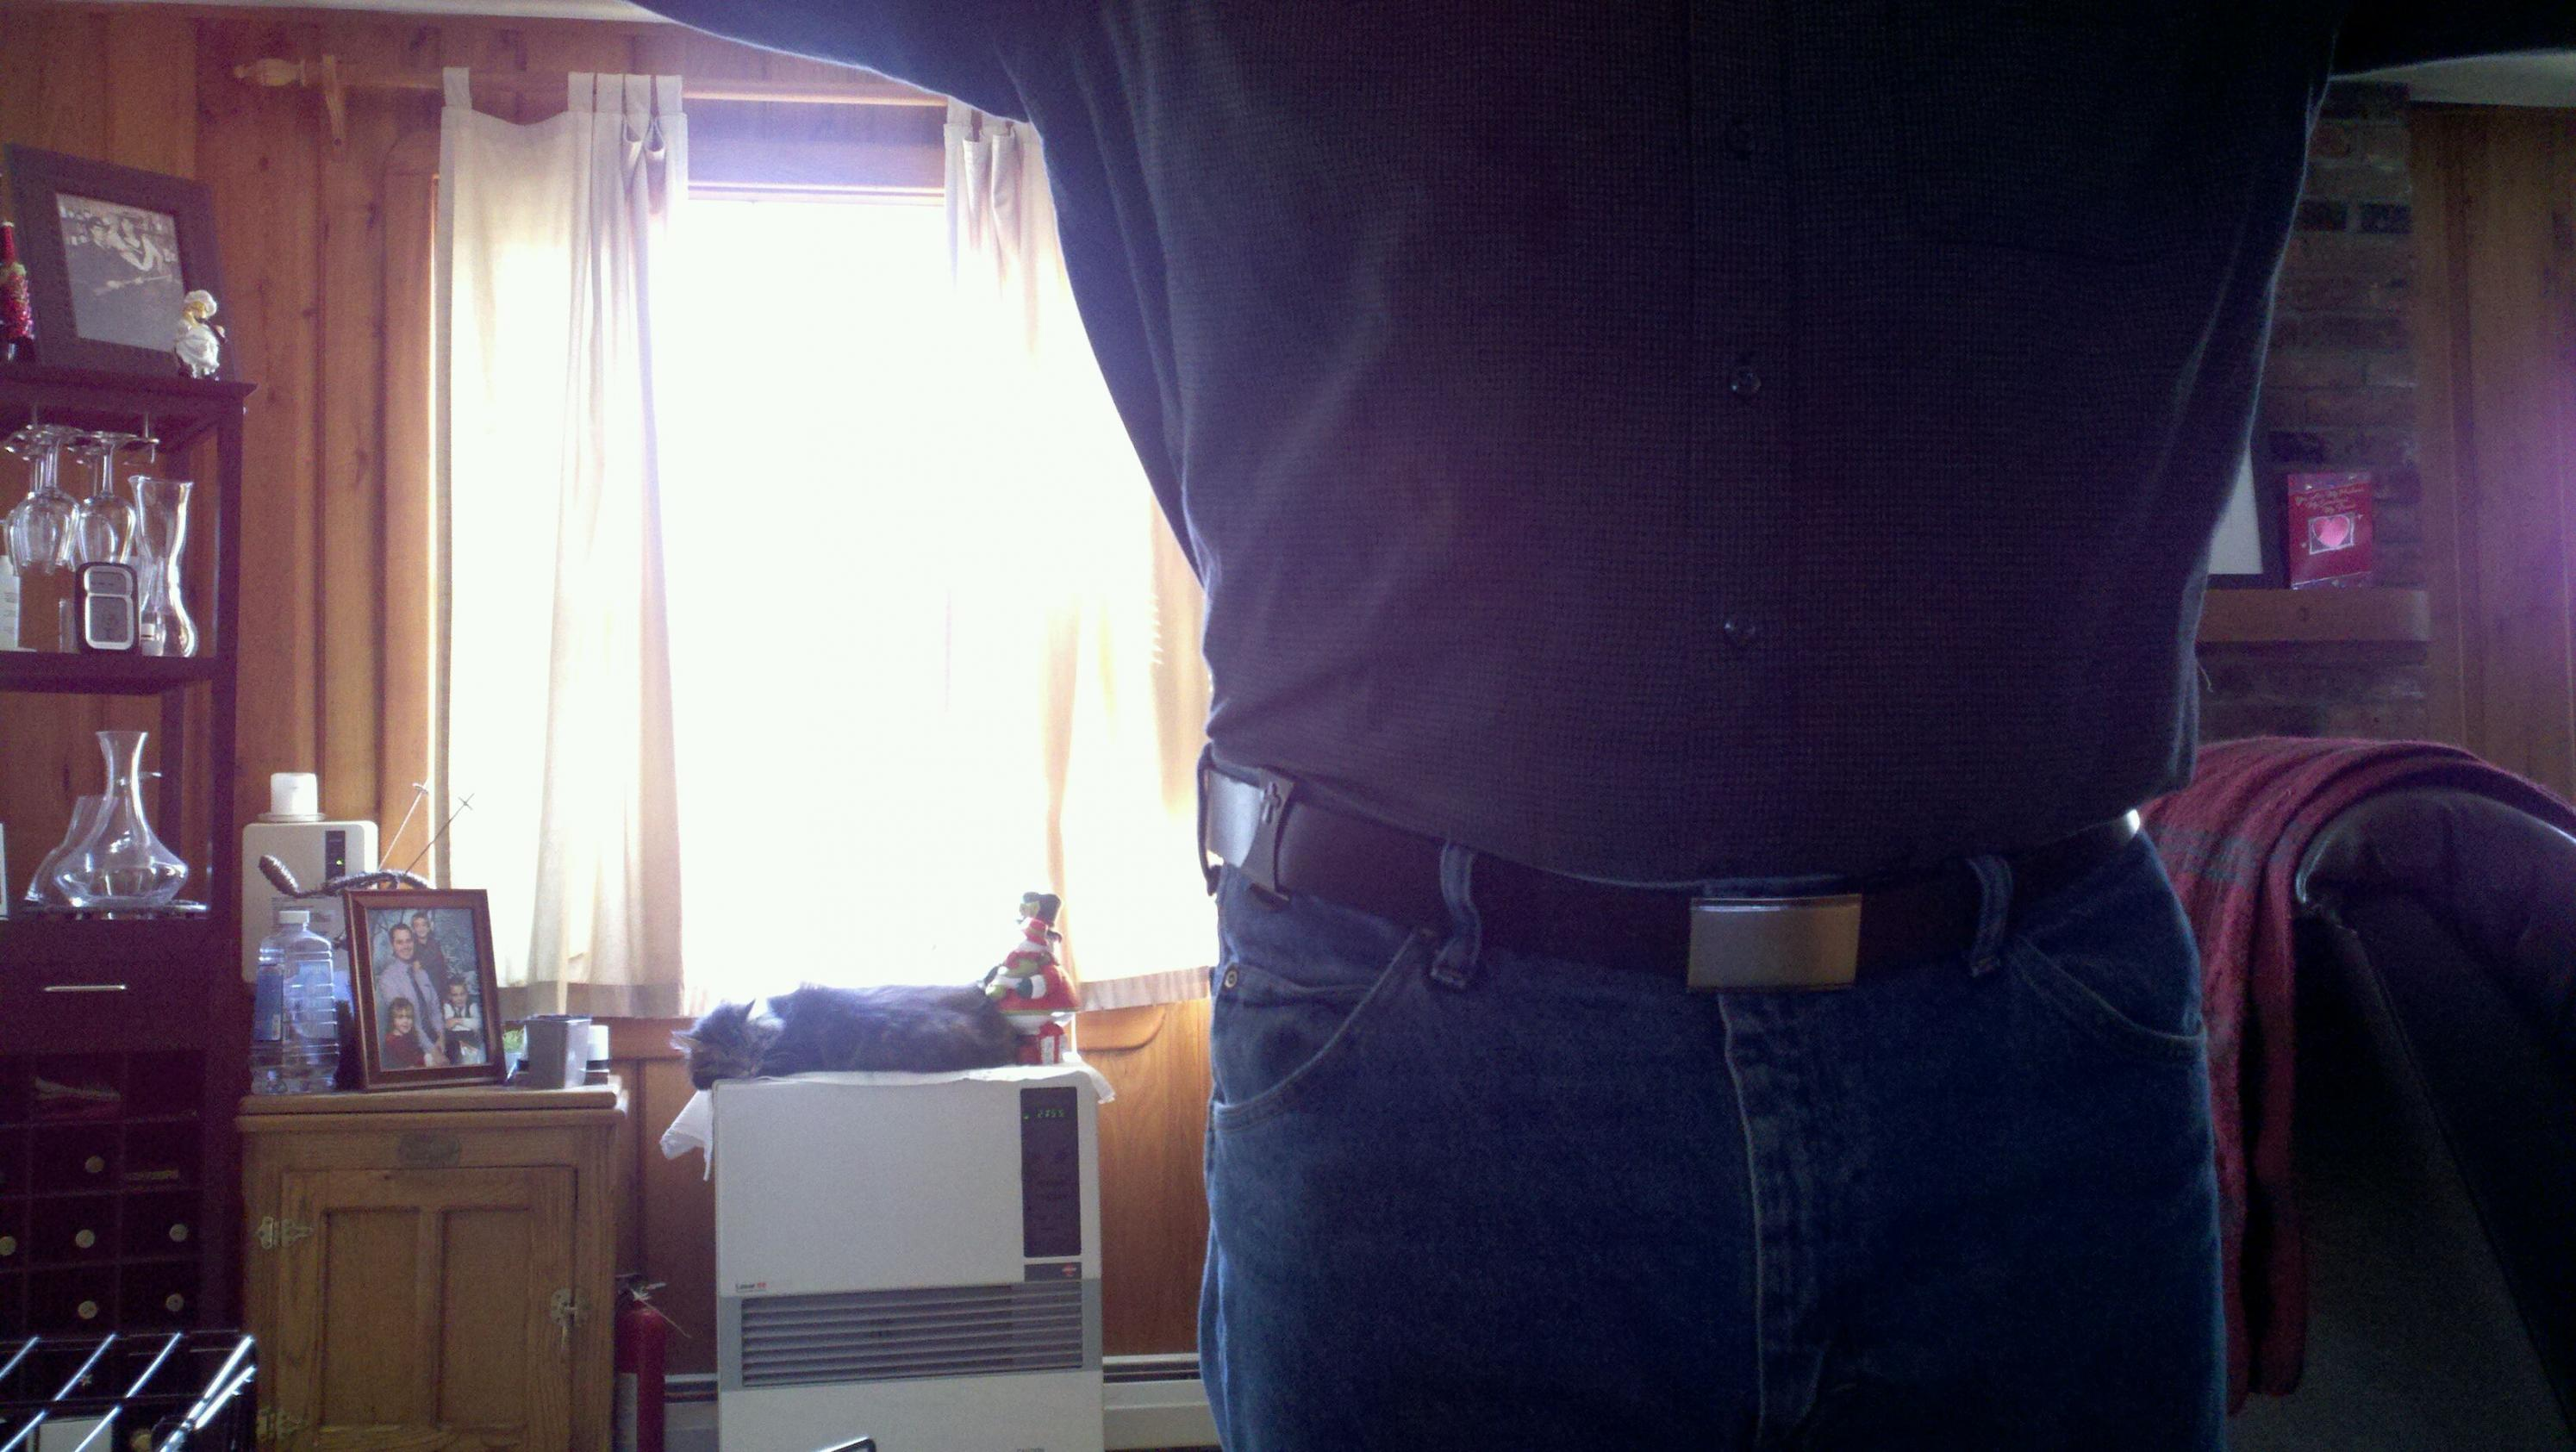 Let's See Your Pic's - How You Carry Concealed.-imagesequence00000002.jpg